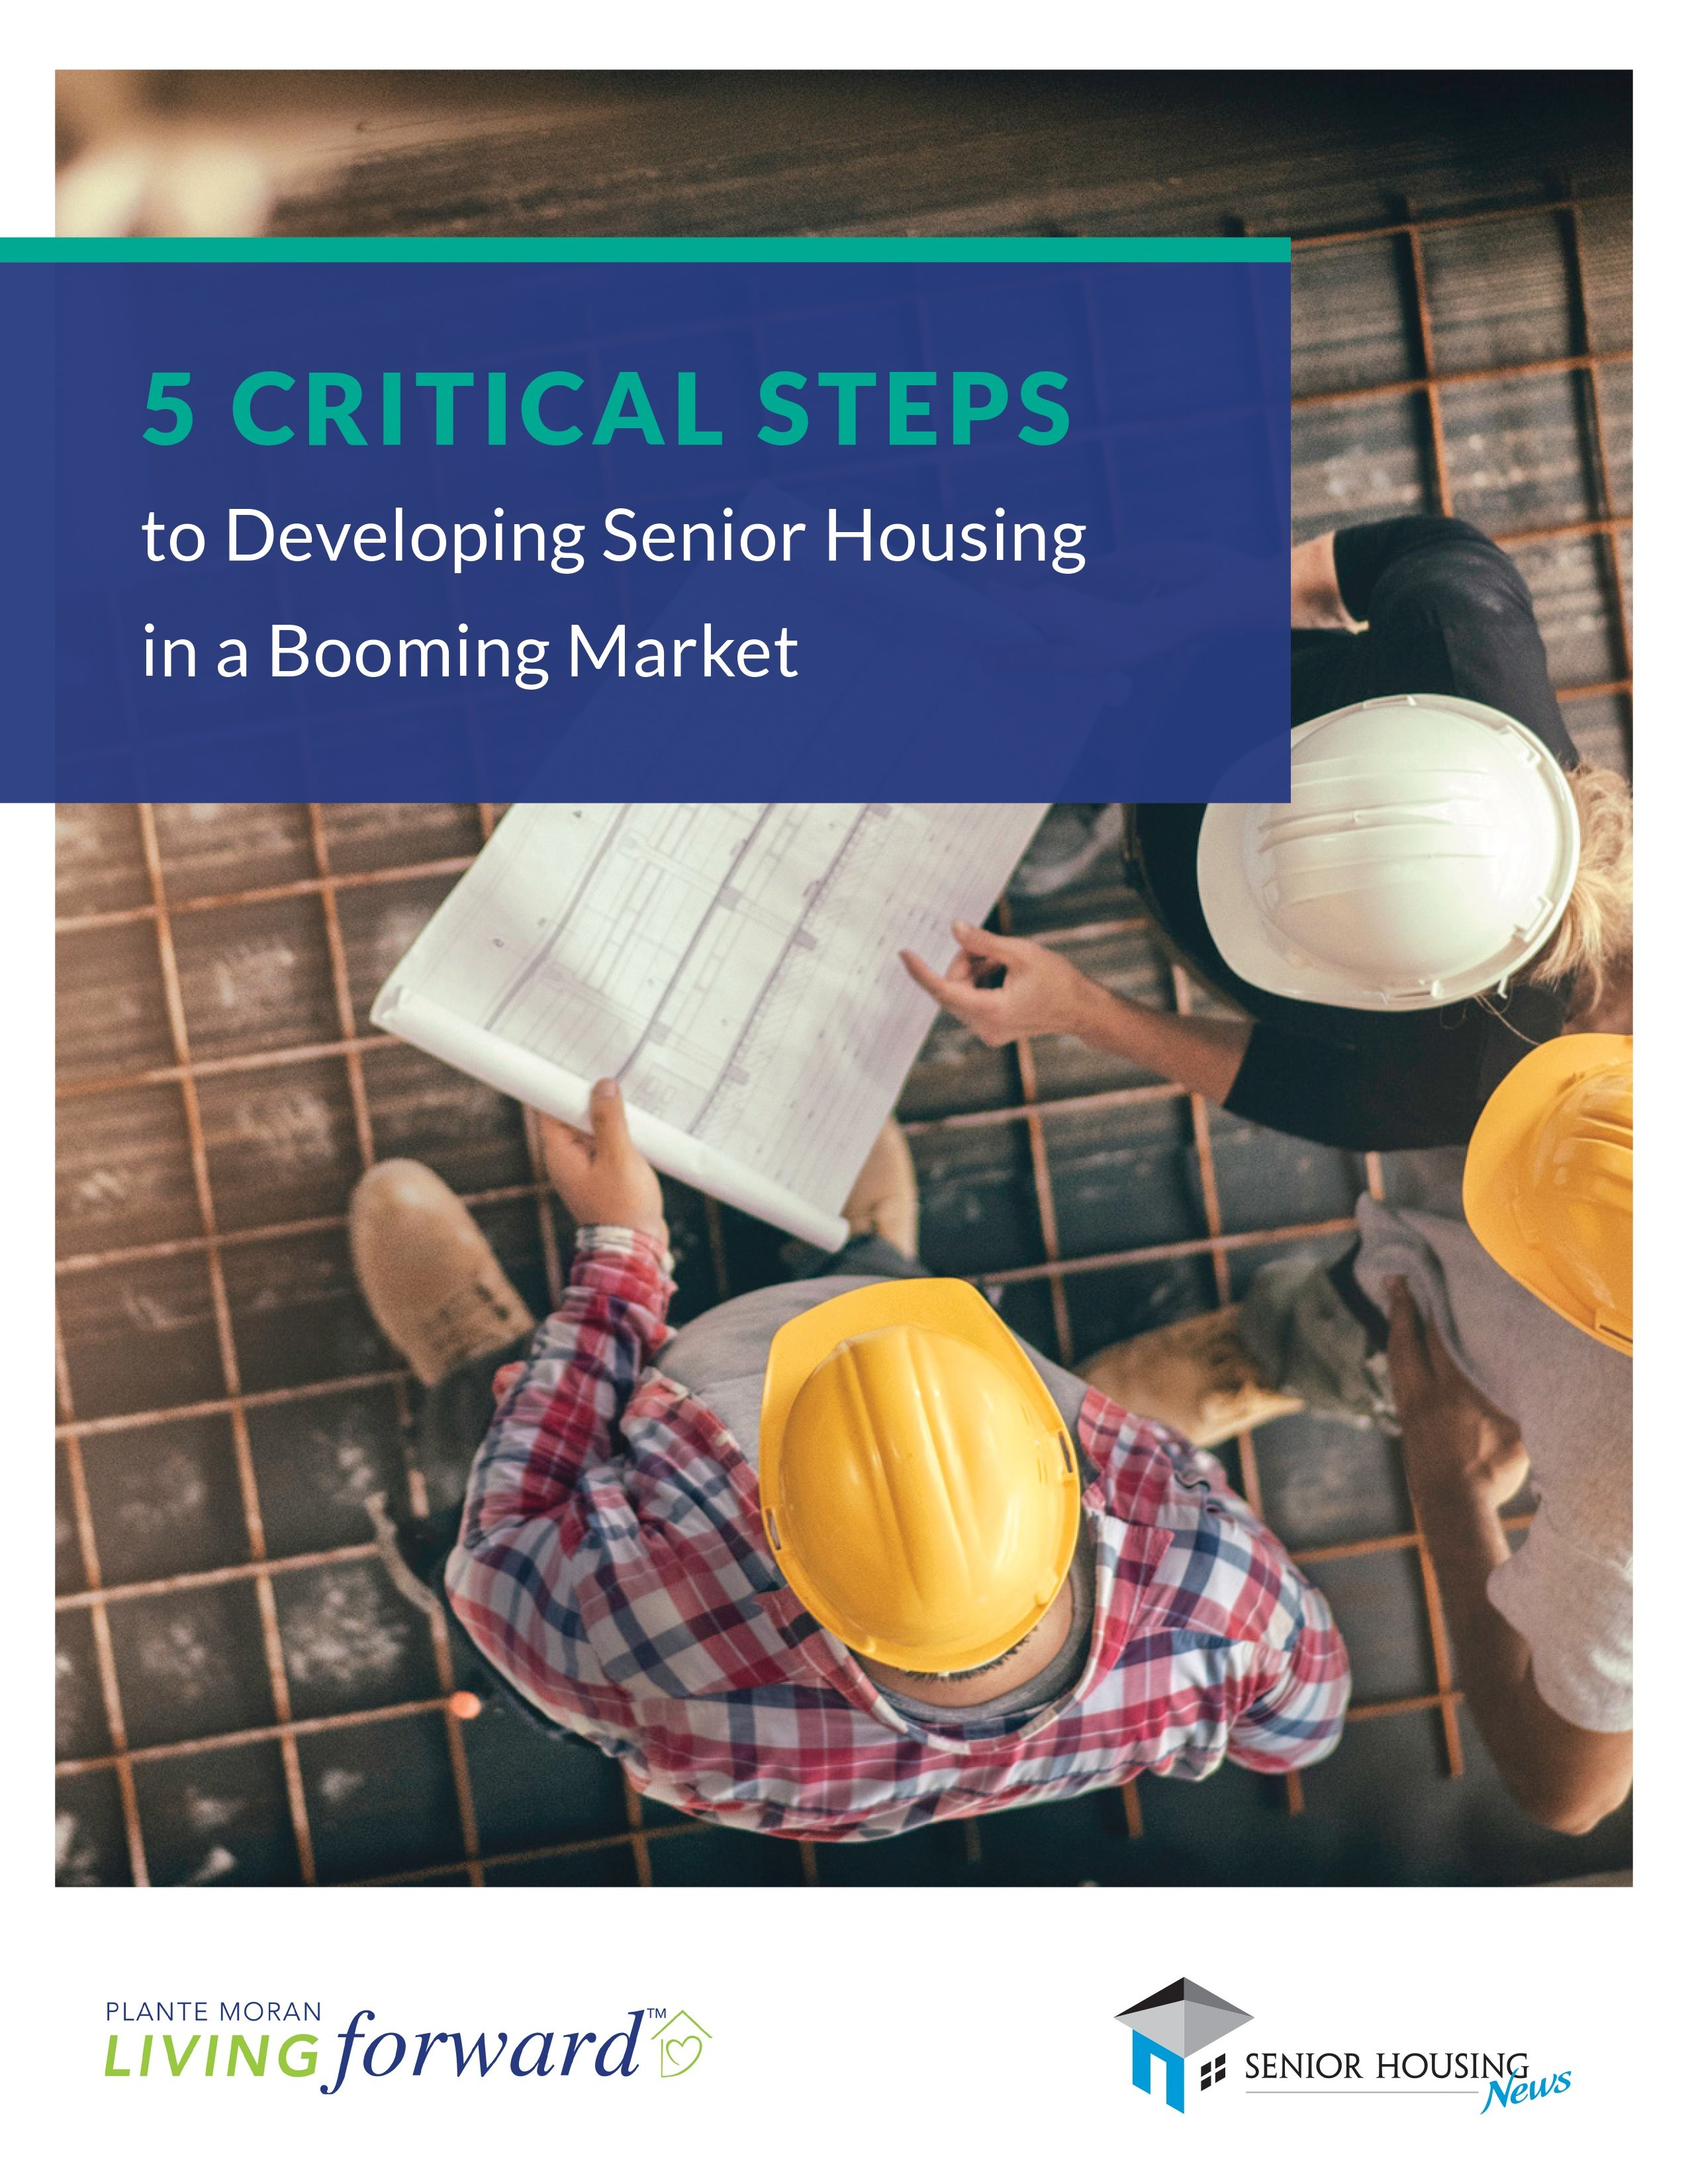 5 Critical Steps to Developing Senior Housing in a Booming Market